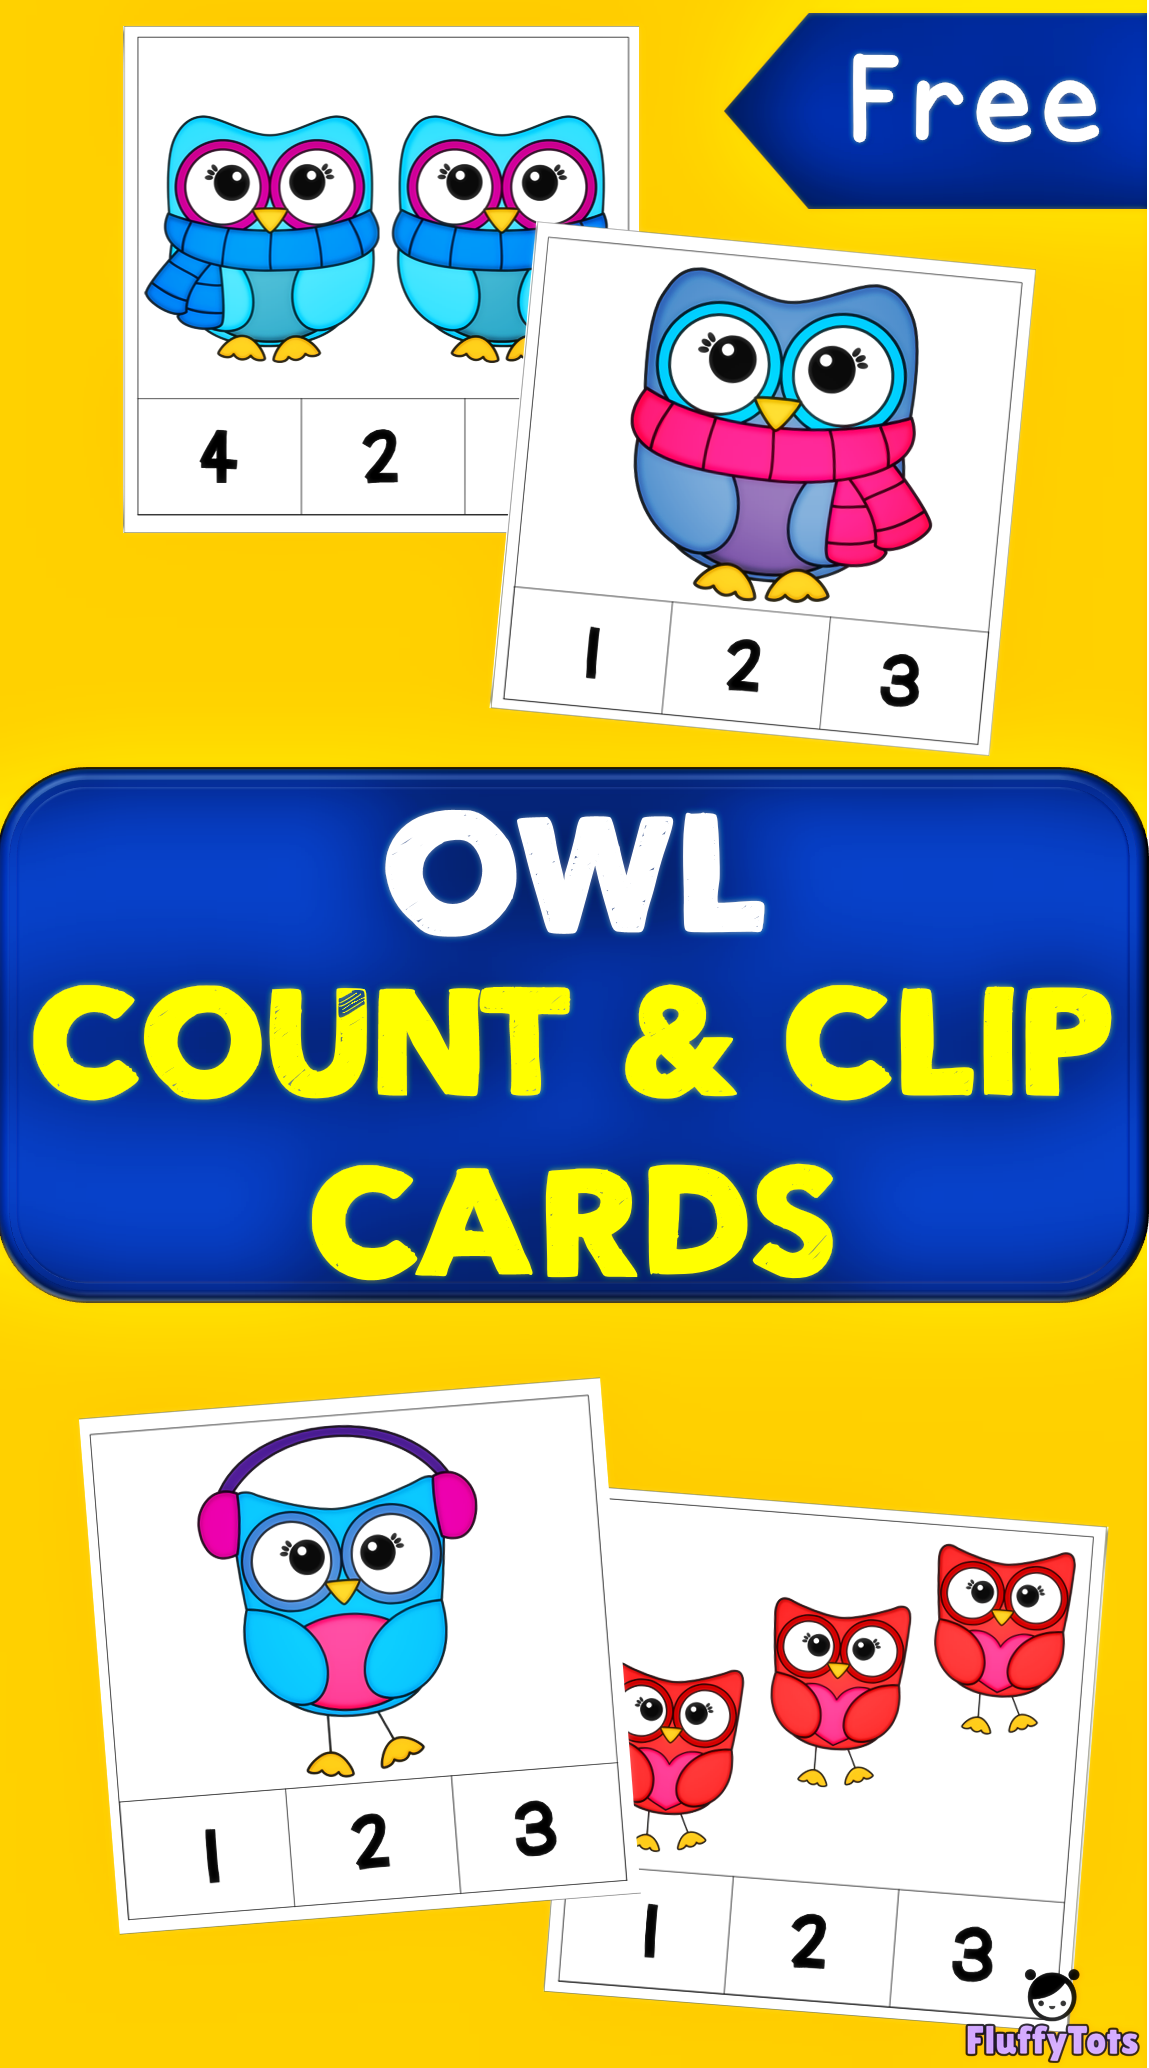 Owl Count and Clip Card 20 Easy Sets for Preschoolers